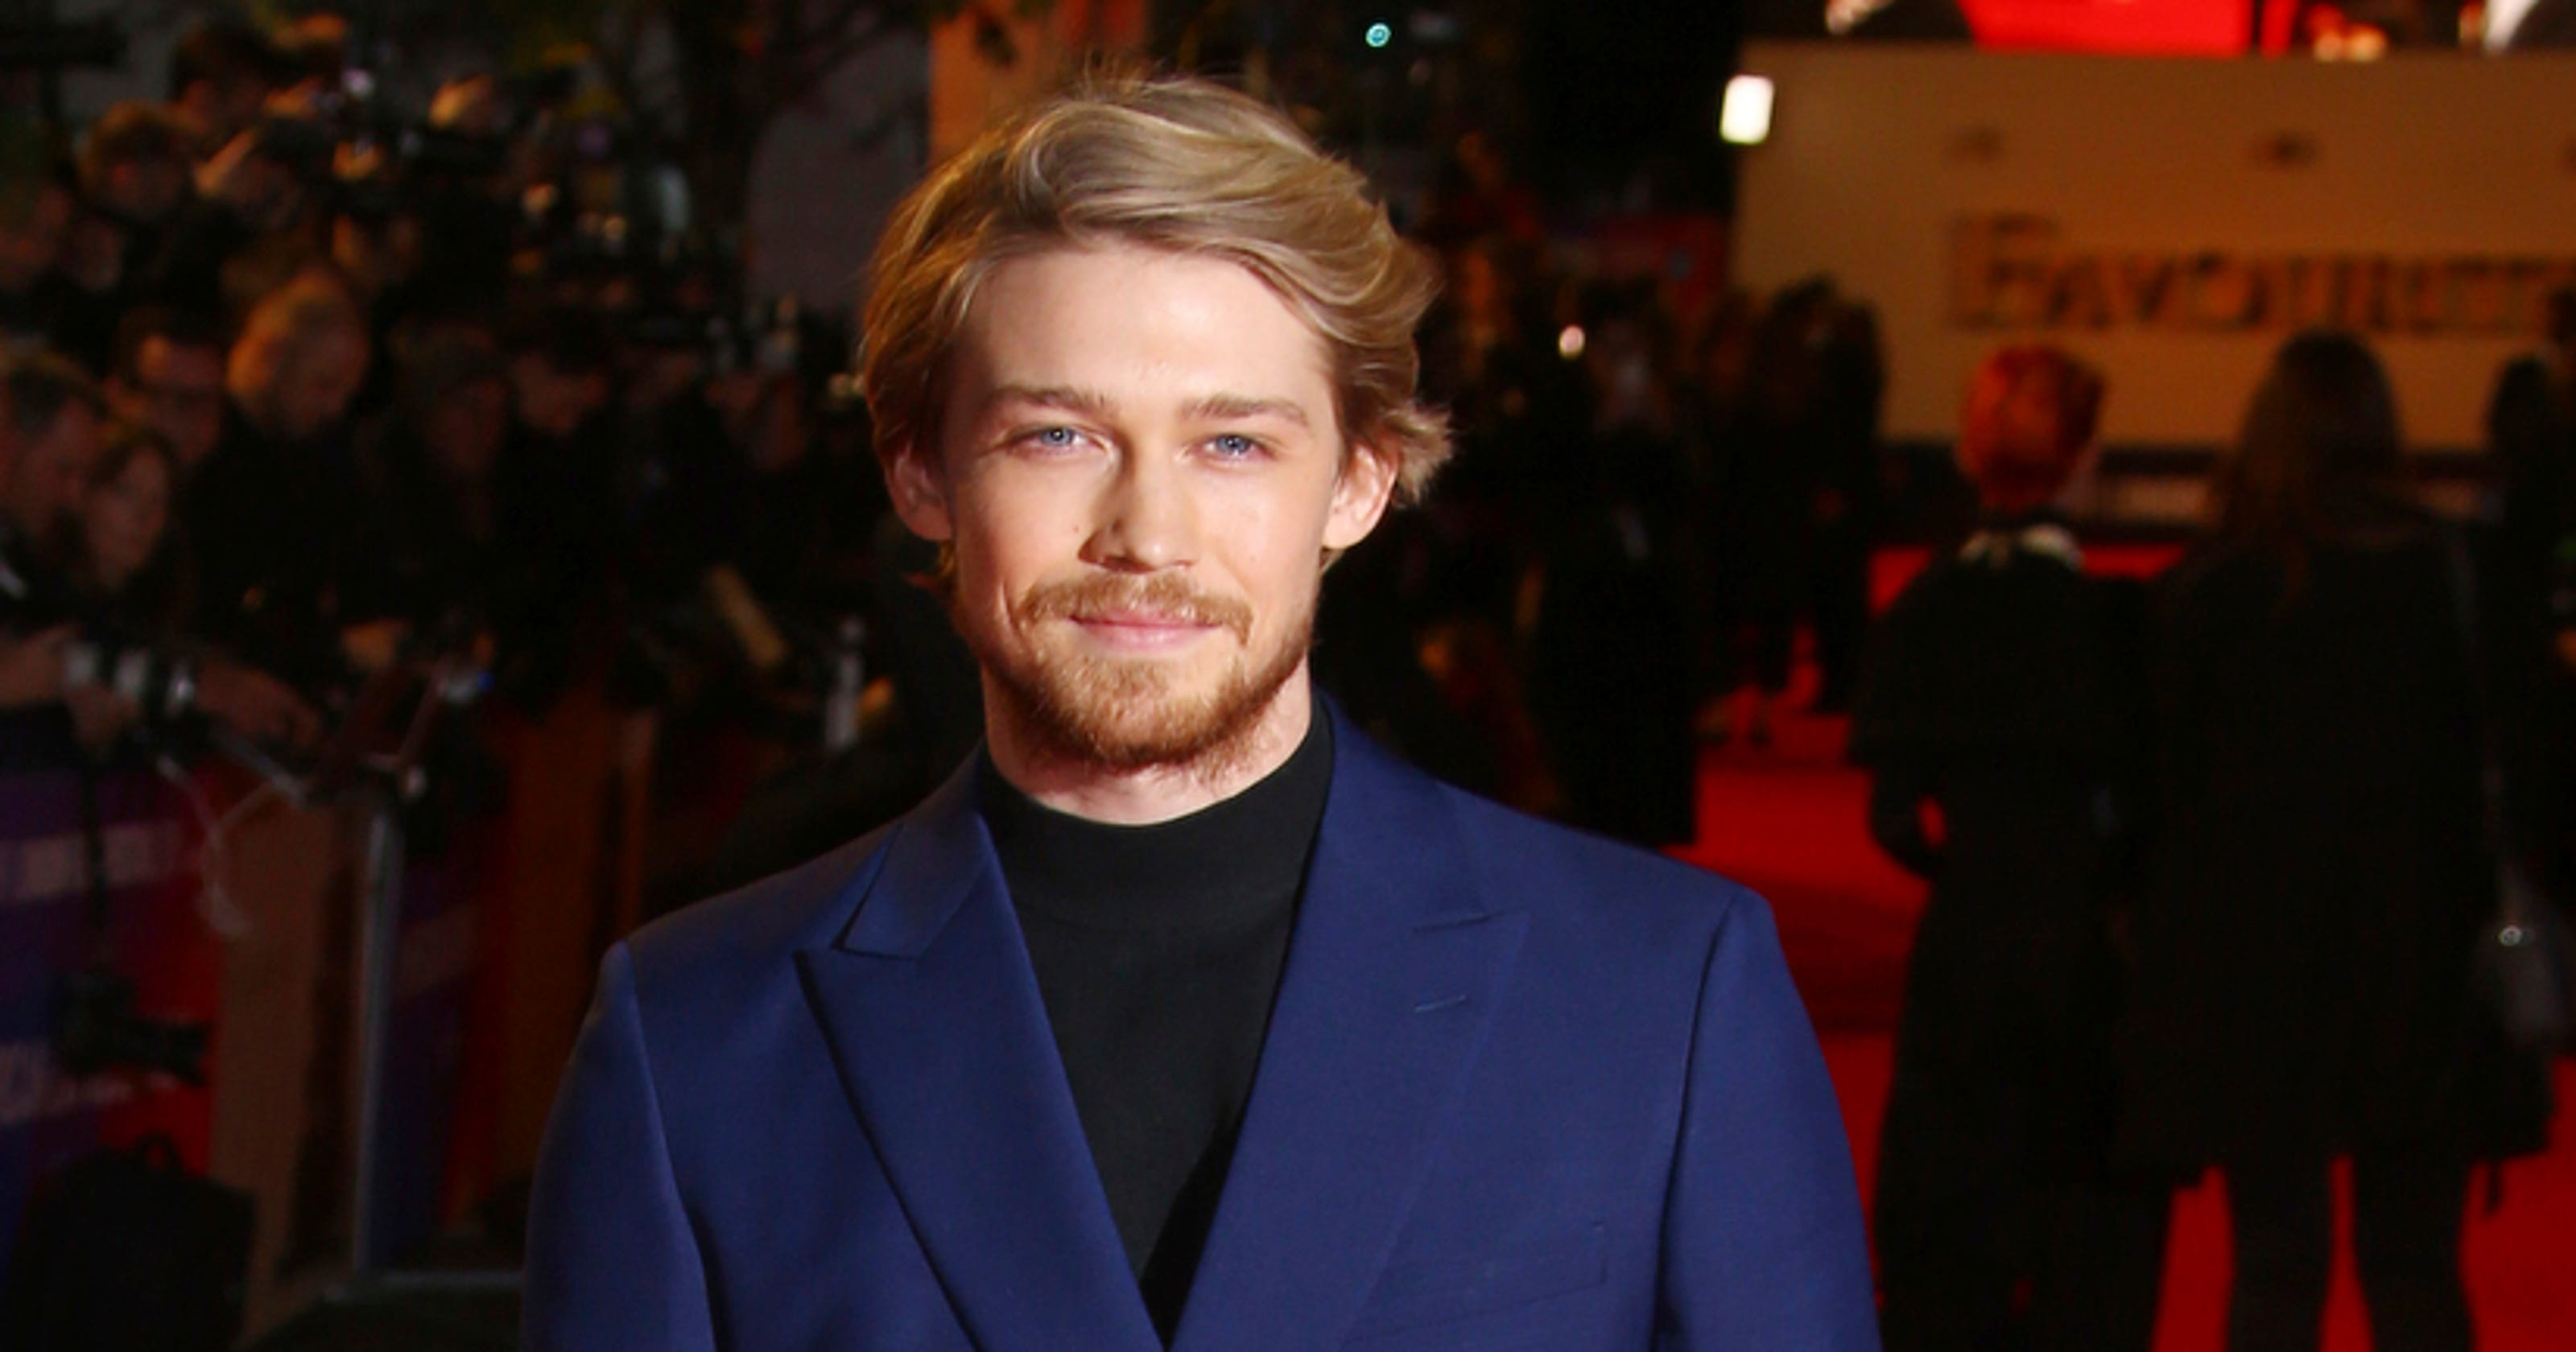 Joe Alwyn: What you need to know, from his hot roles to ...